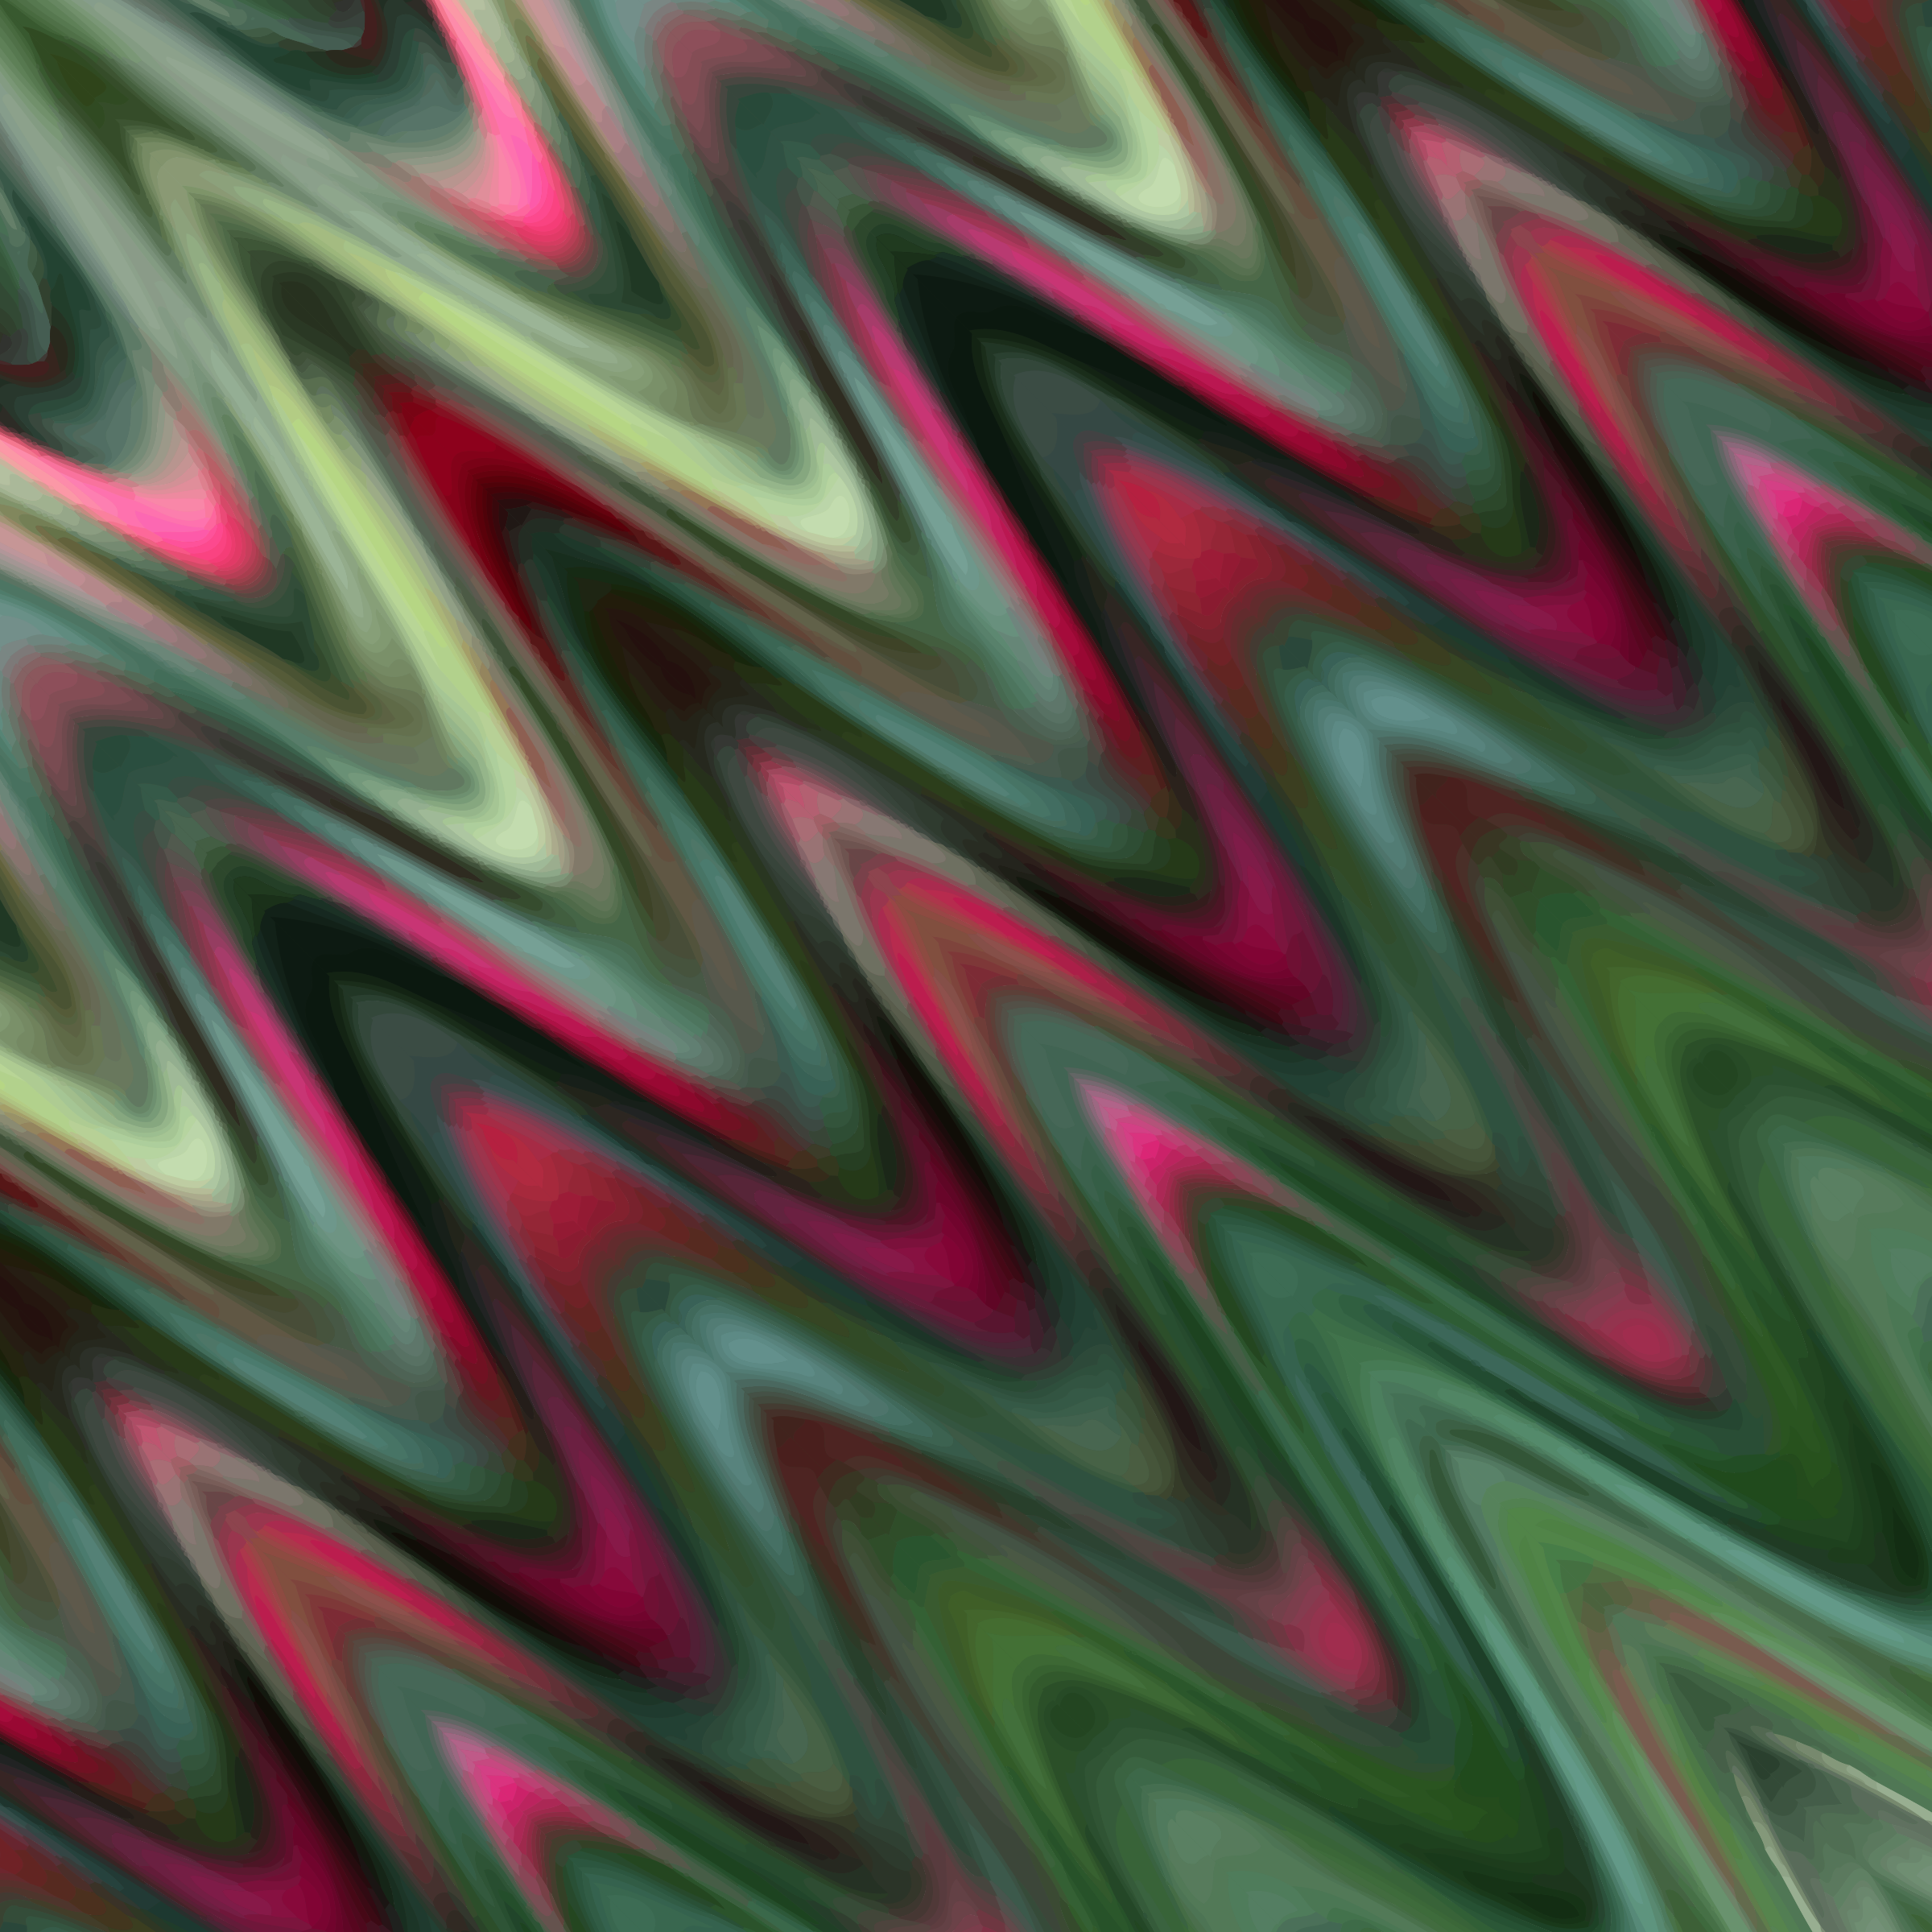 Background pattern 121 by Firkin